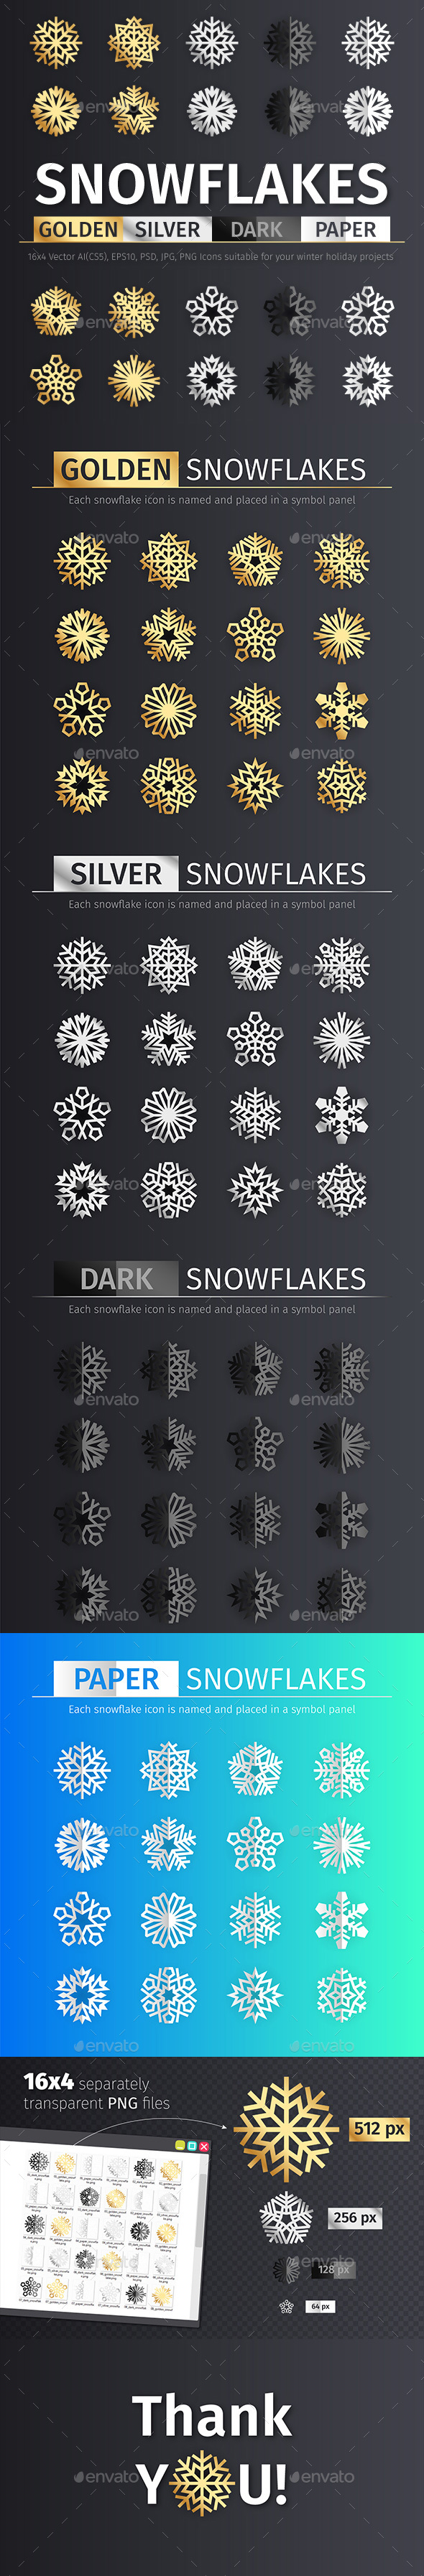 GraphicRiver Golden and Silver Snowflake Icons 21082287